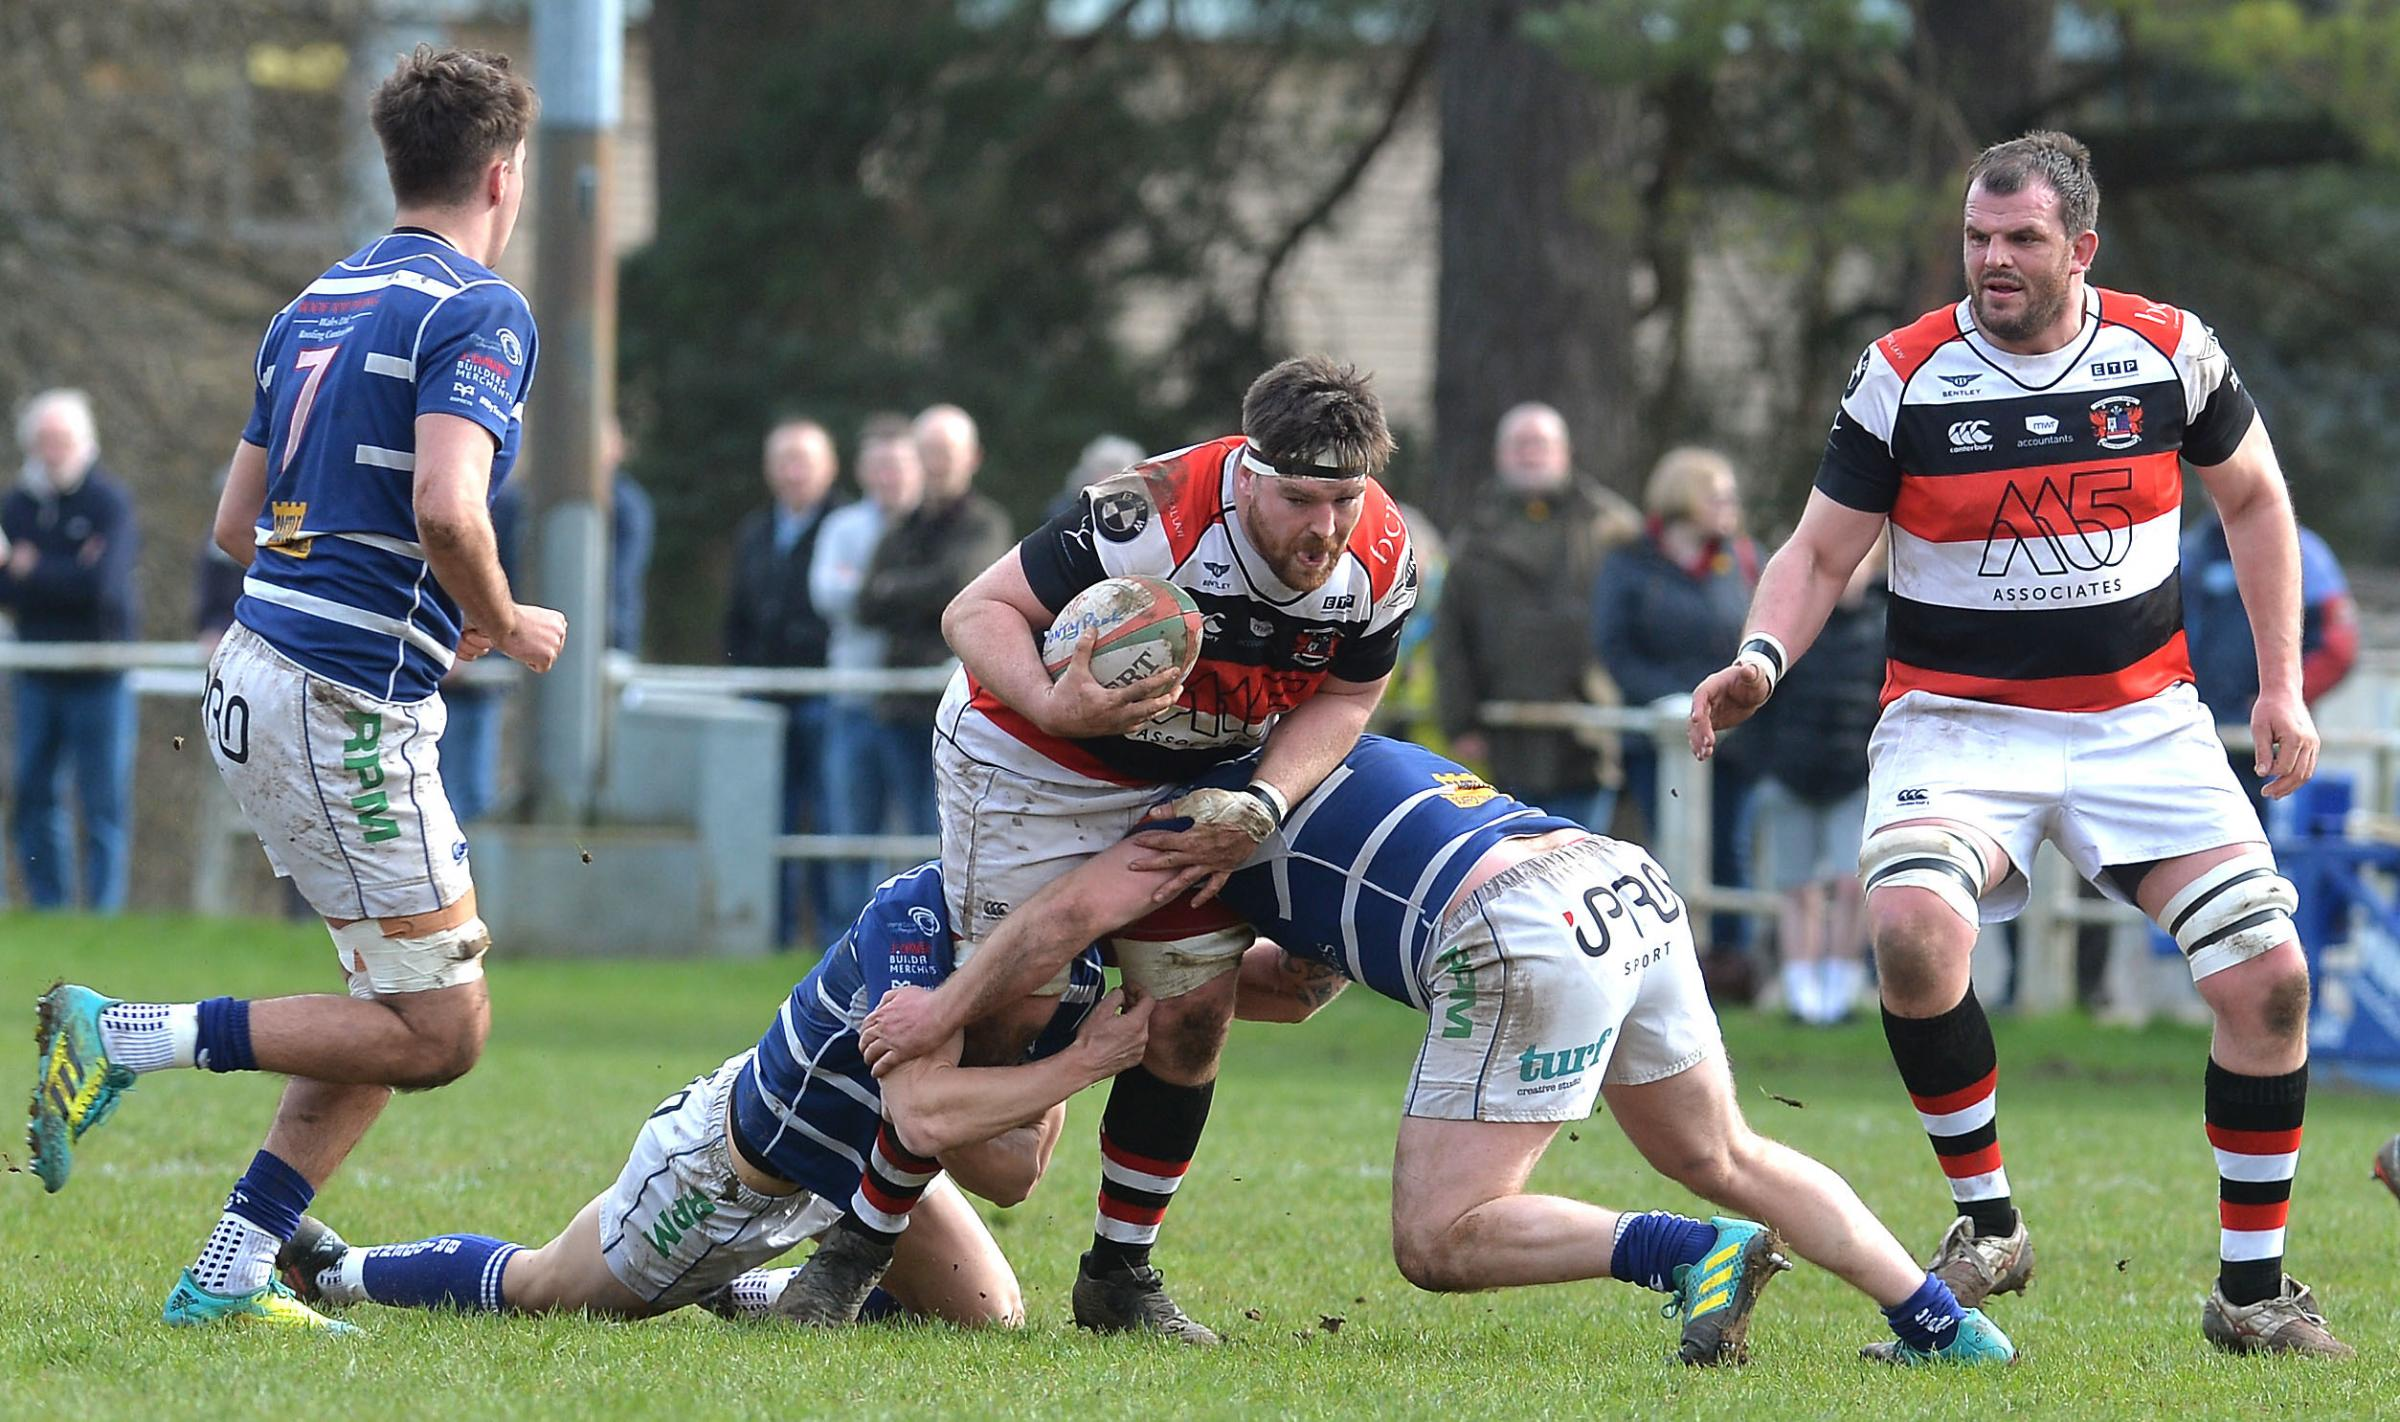 GRUNT UP FRONT: Flanker Scott Matthews and the rest of the Pontypool pack will fly into Merthyr (Picture: www.christinsleyphotography.co.uk)